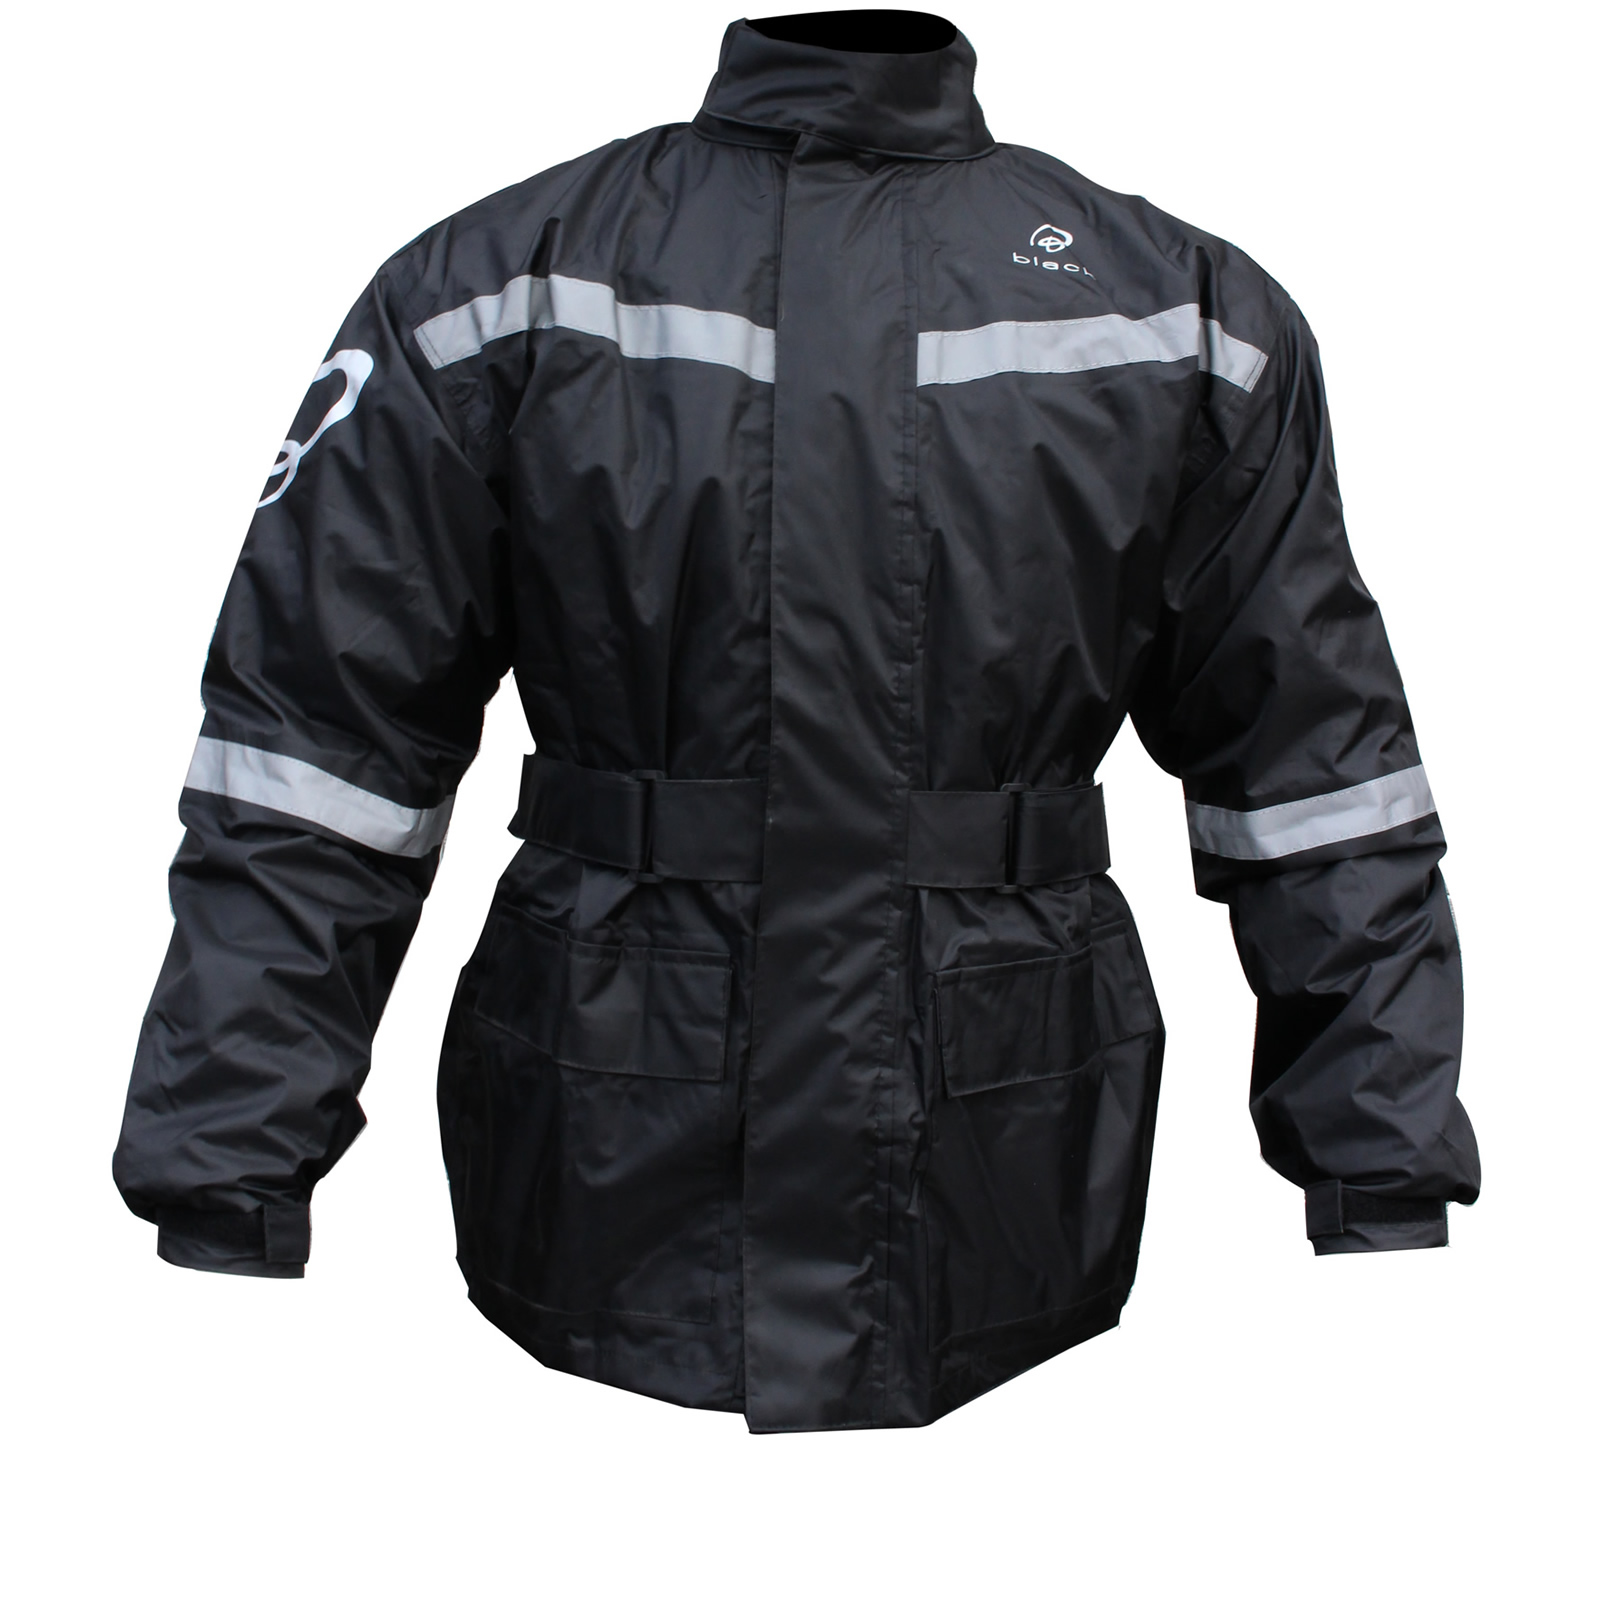 5129-Black-Flare-Waterproof-Motorcycle-Jacket-1600-0